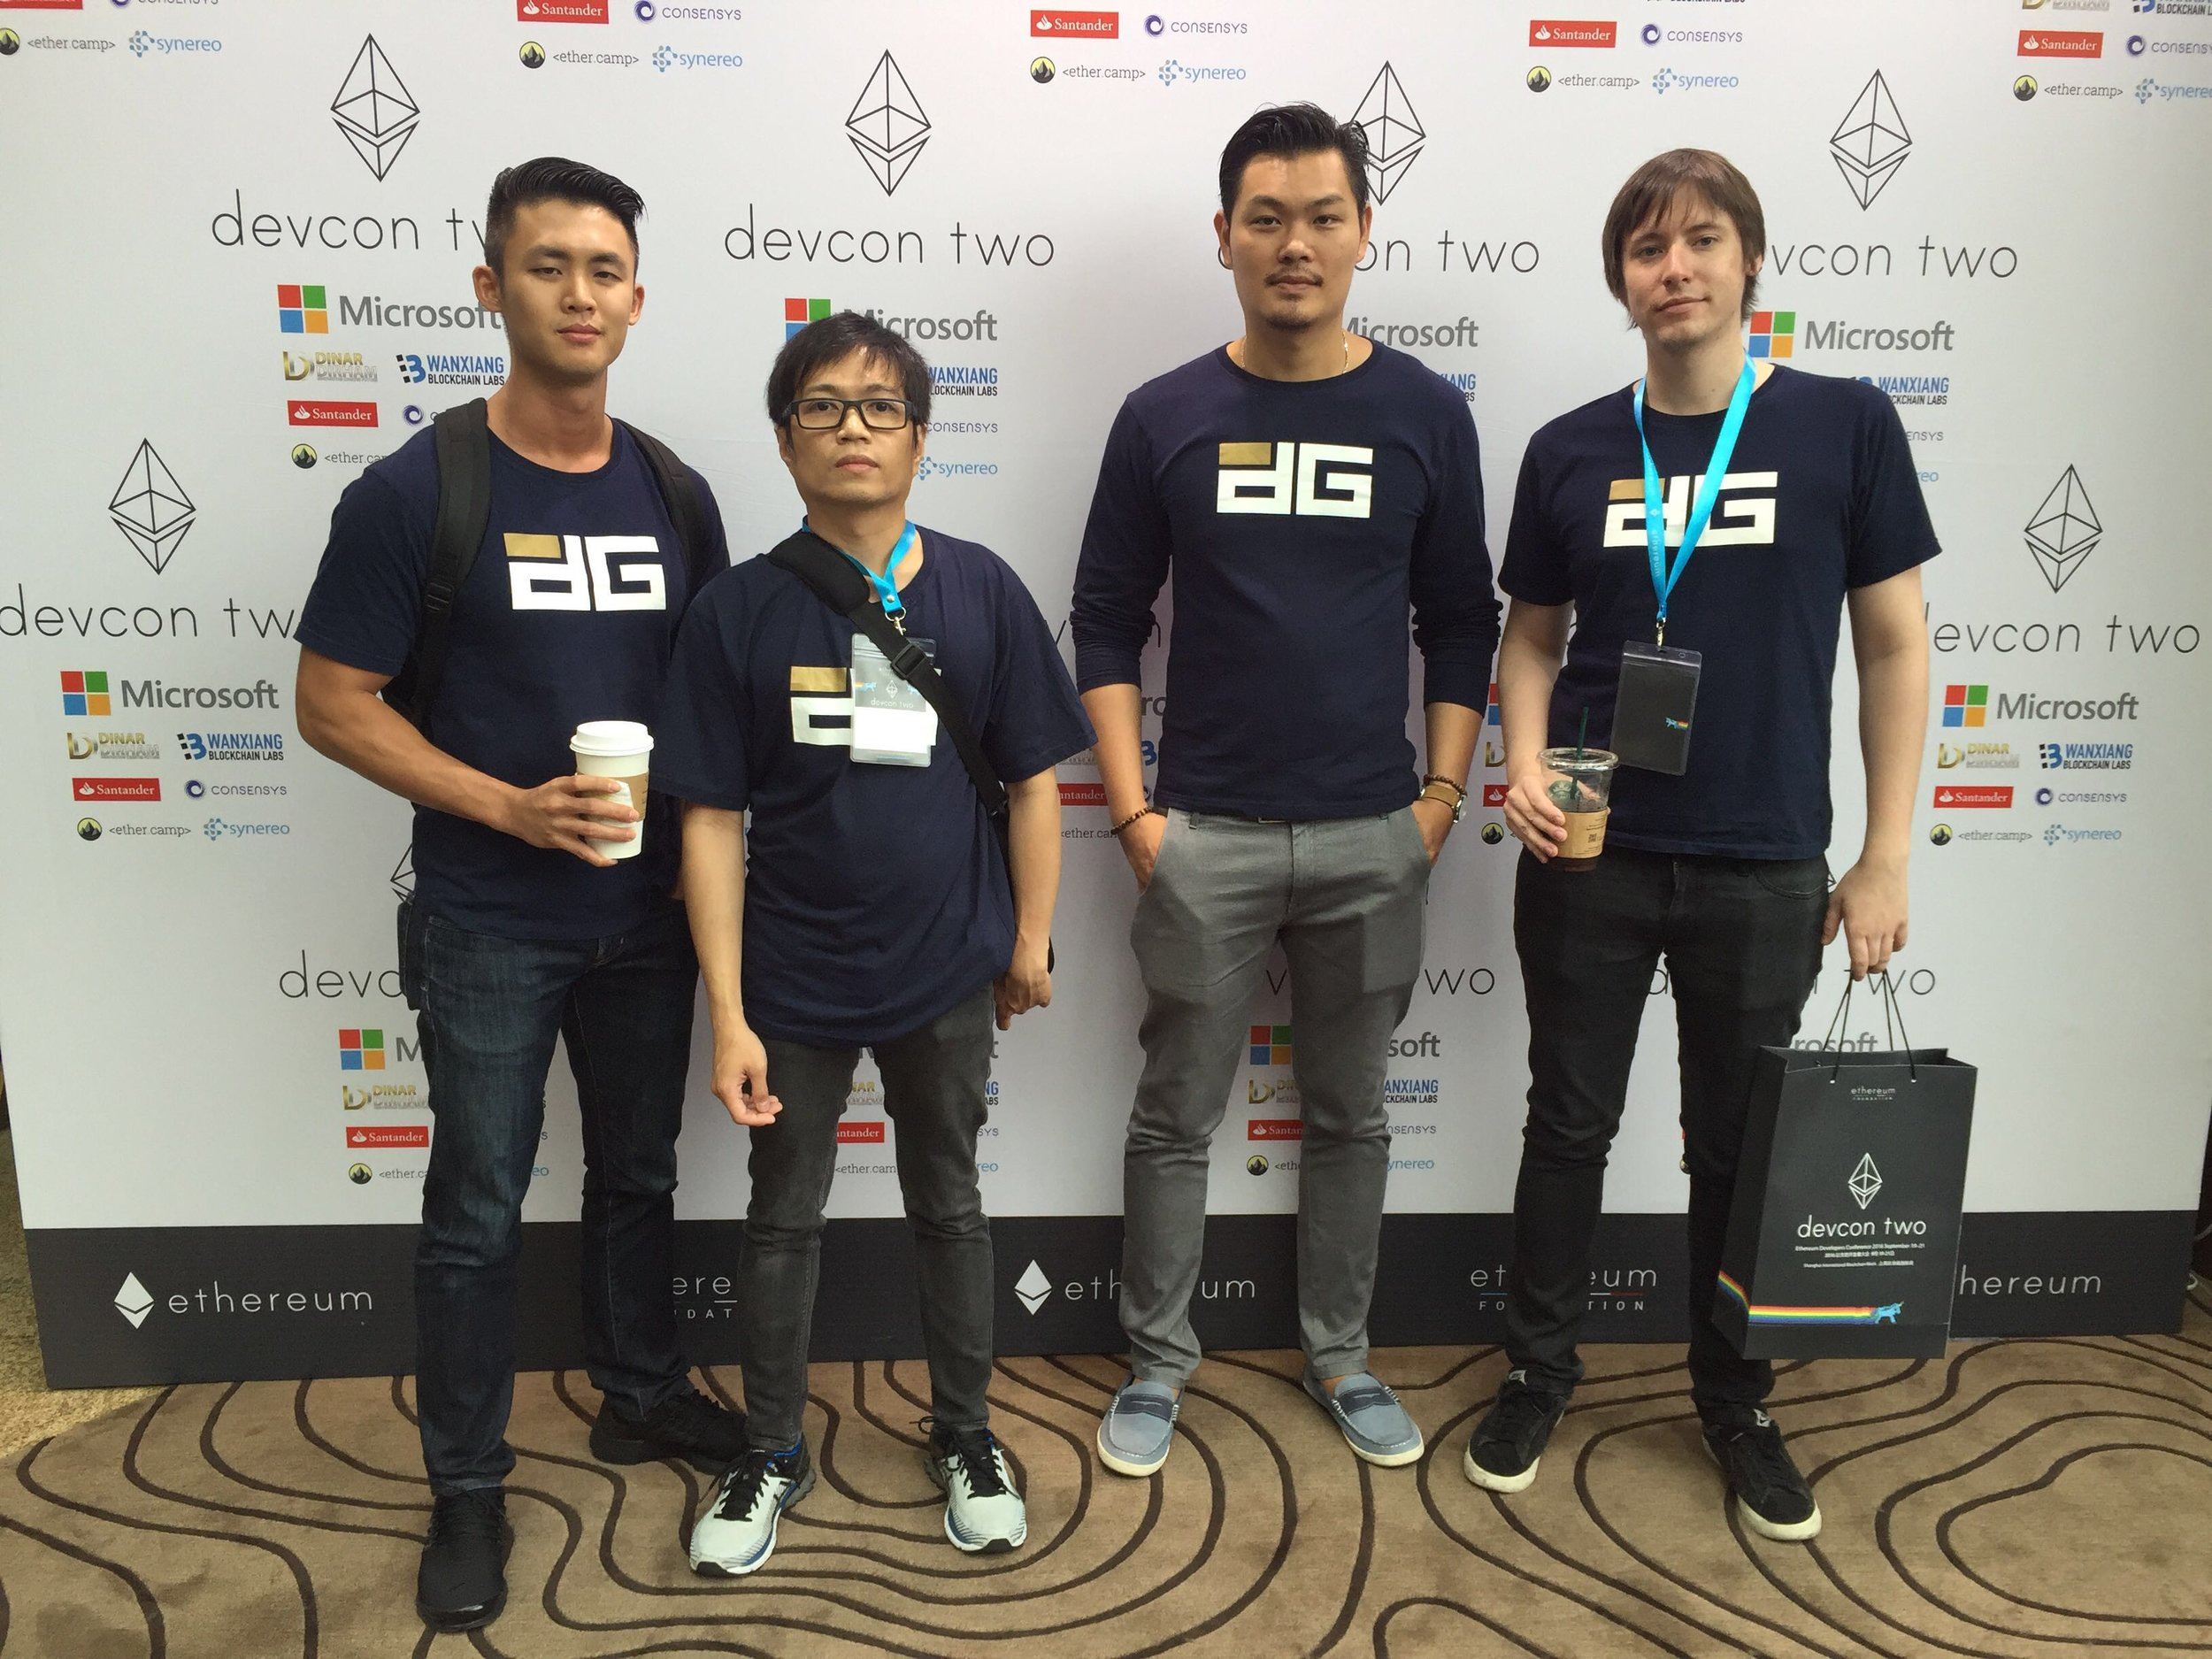 Digix Global's core team (left to right): Shaun Djie (CCO), Anthony Eufemio (CTO), KC Chng (CEO) and Chris Hitchcott (core developer). Photo credit: Digix Global.